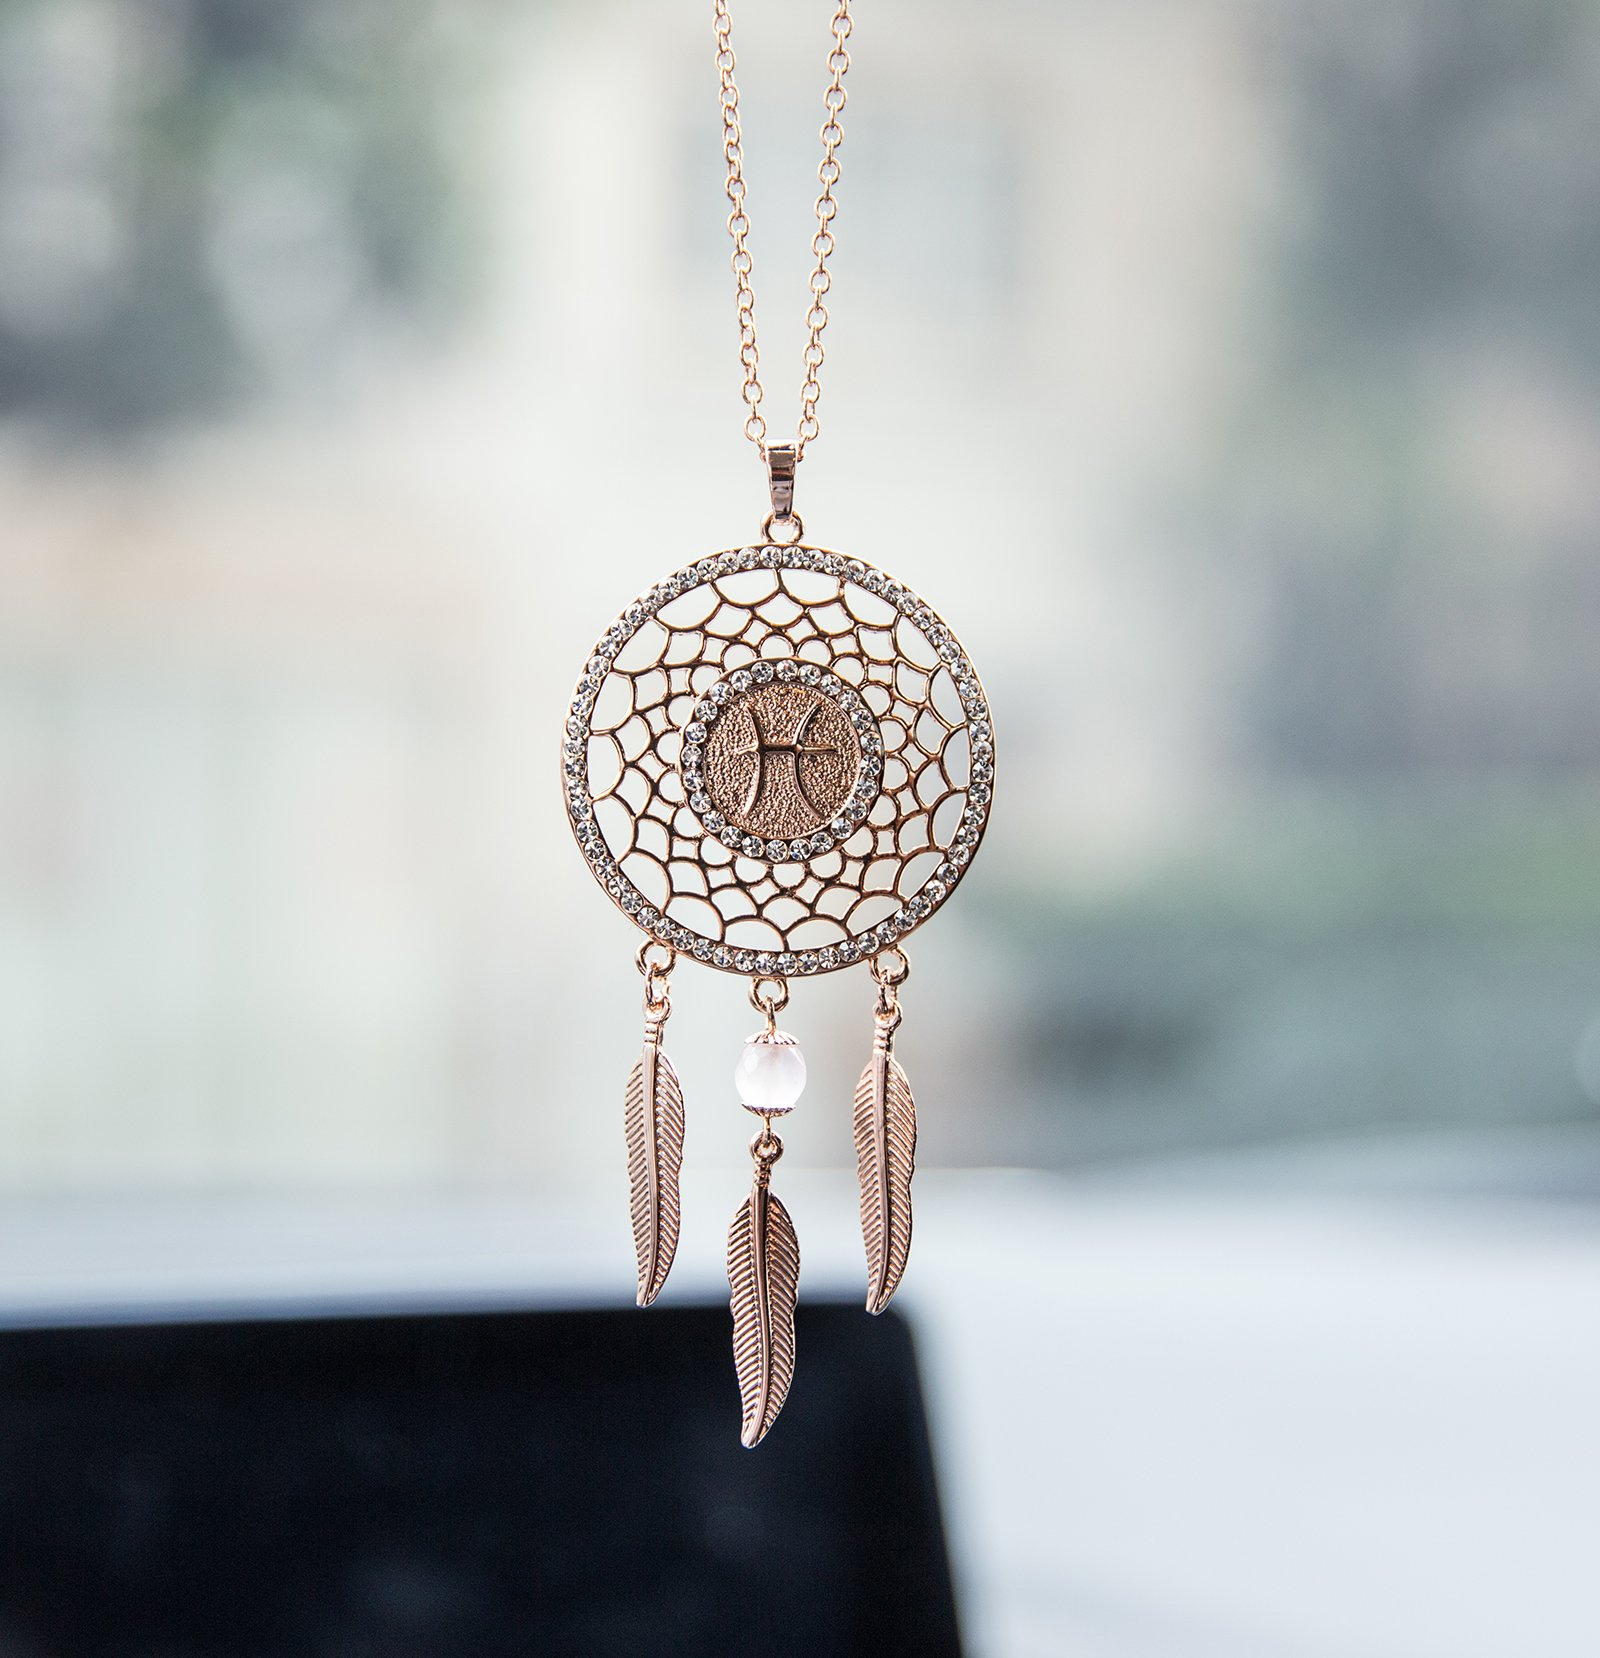 Boltz Mini Zodiac Pisces Sign Dream Catcher Car Charm Rear View Mirror Accessories, Boho Dangling Feather Tassel Bead Pendant Constellation Ornament Wall Hanging Home Decoration (Pisces)